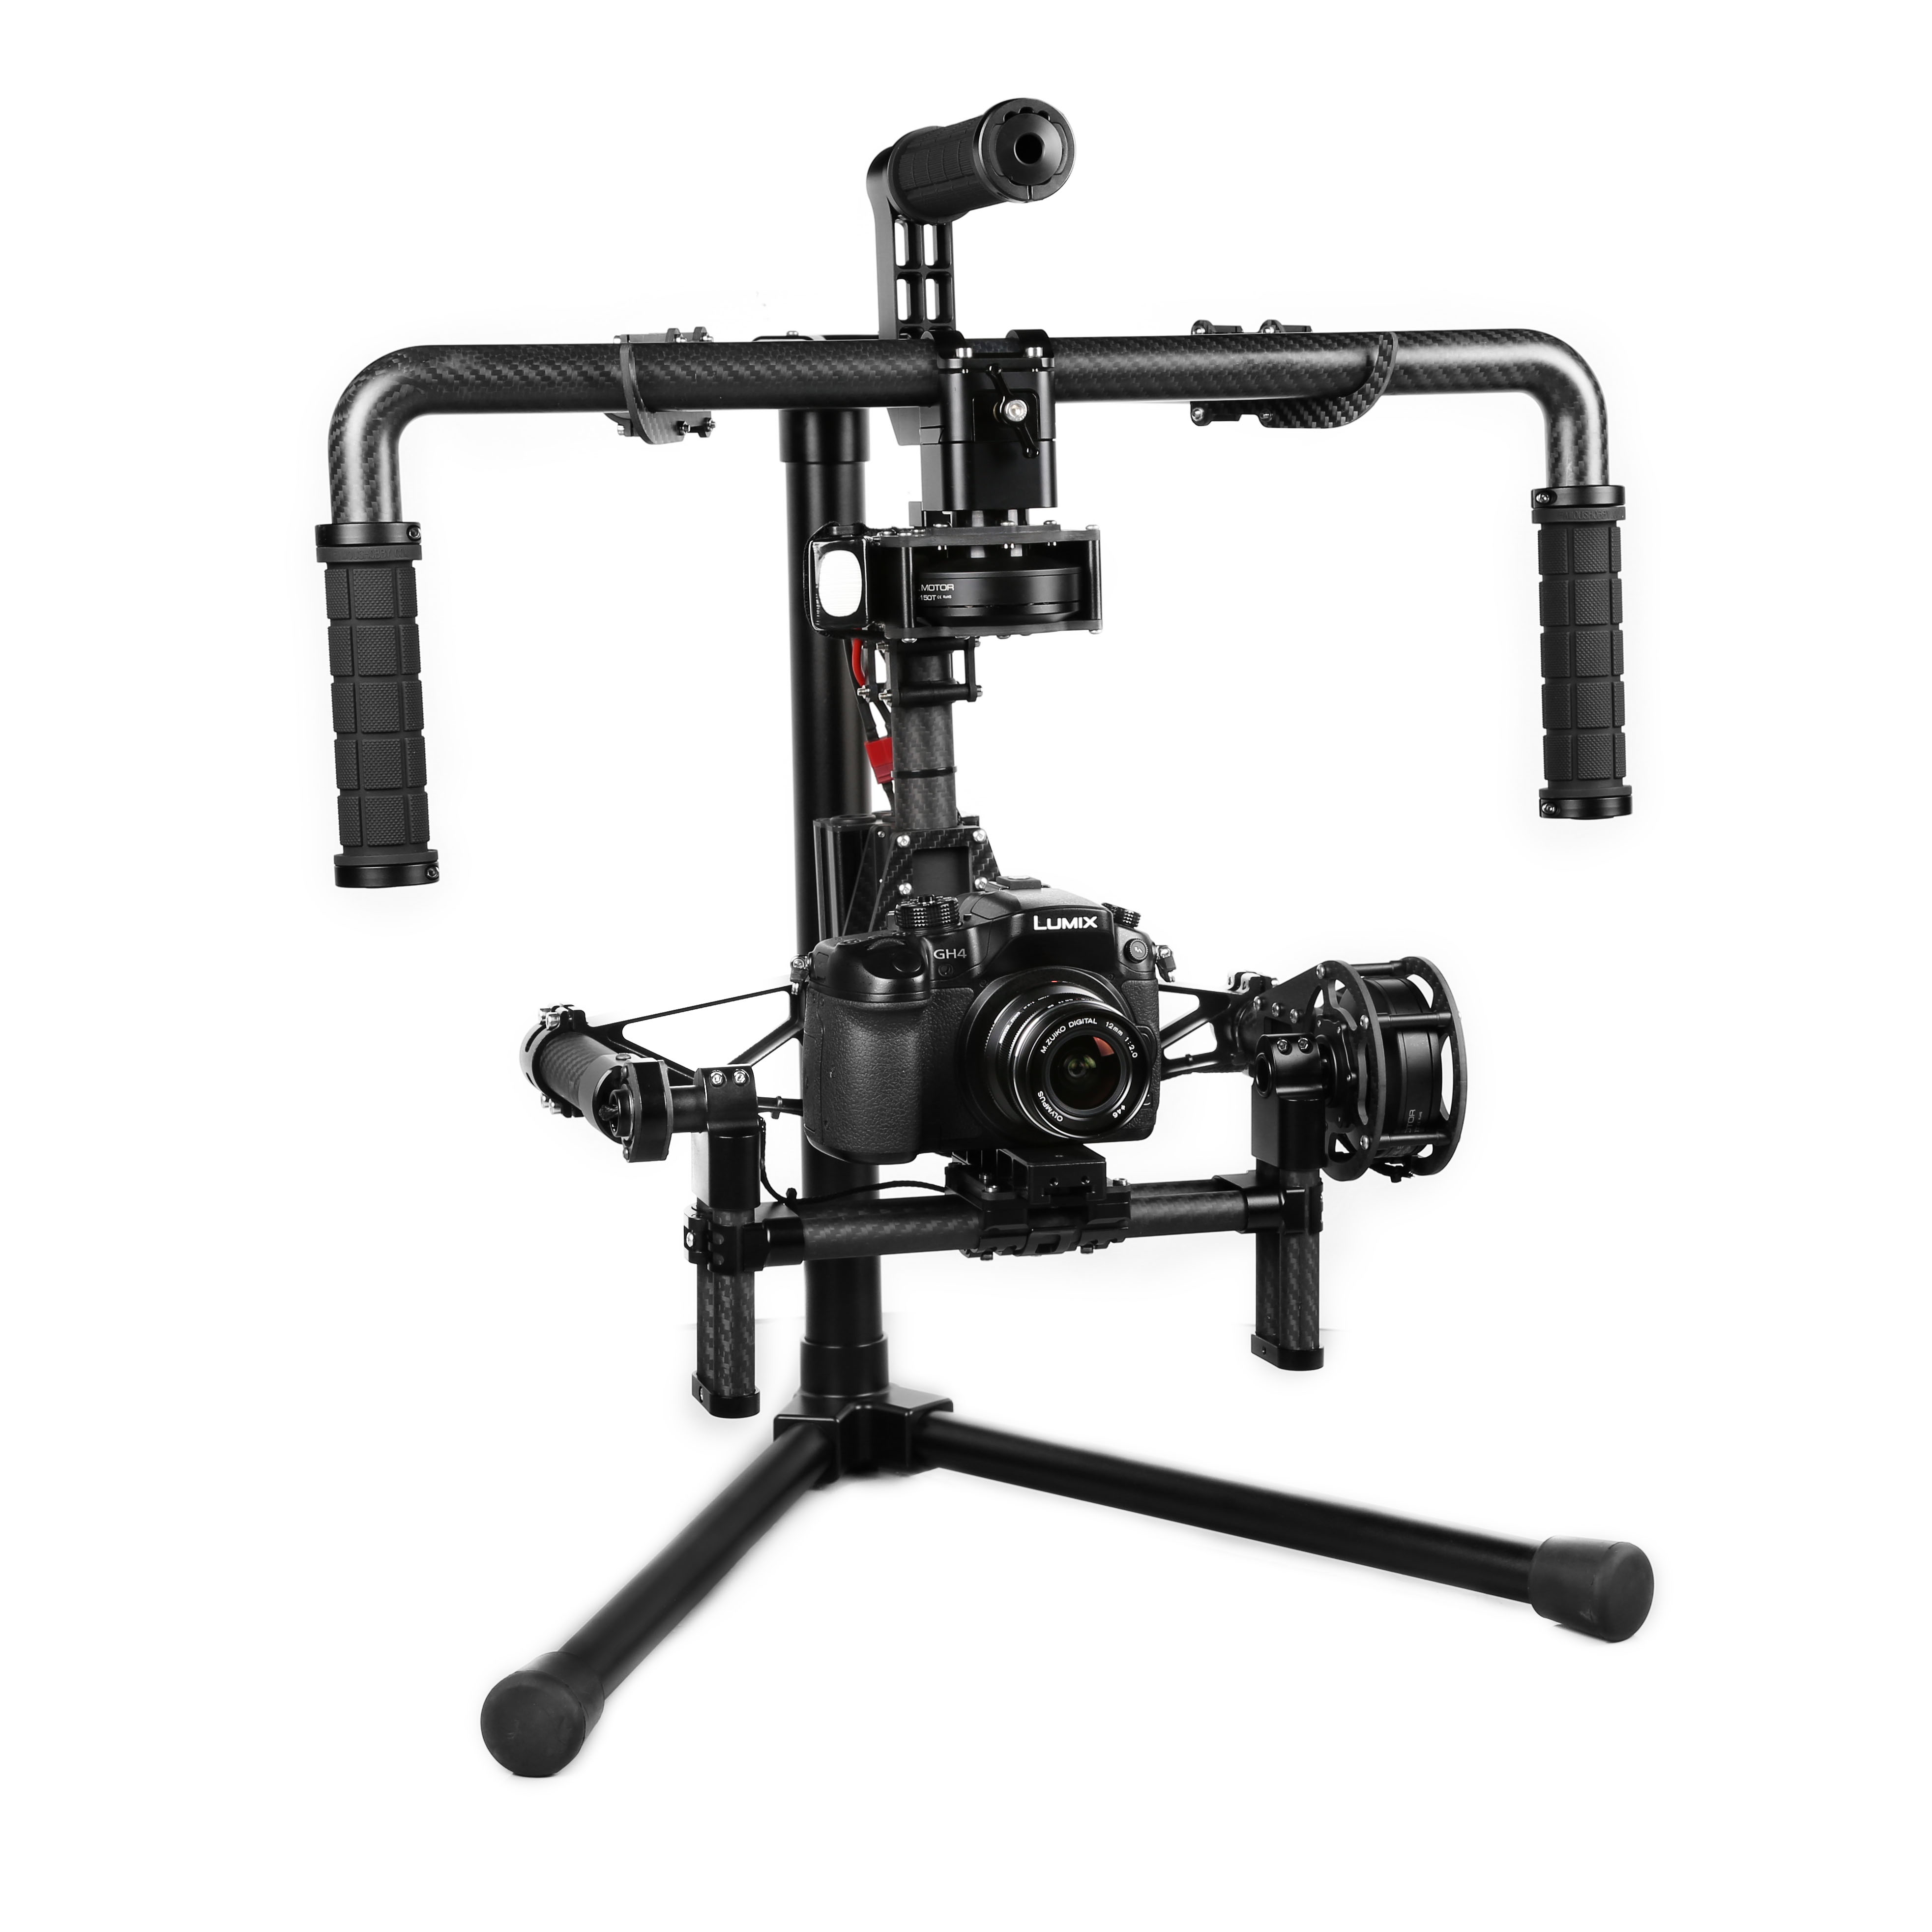 CINESTAR 3 Axis Brushless GIMBAL system & Steadicam